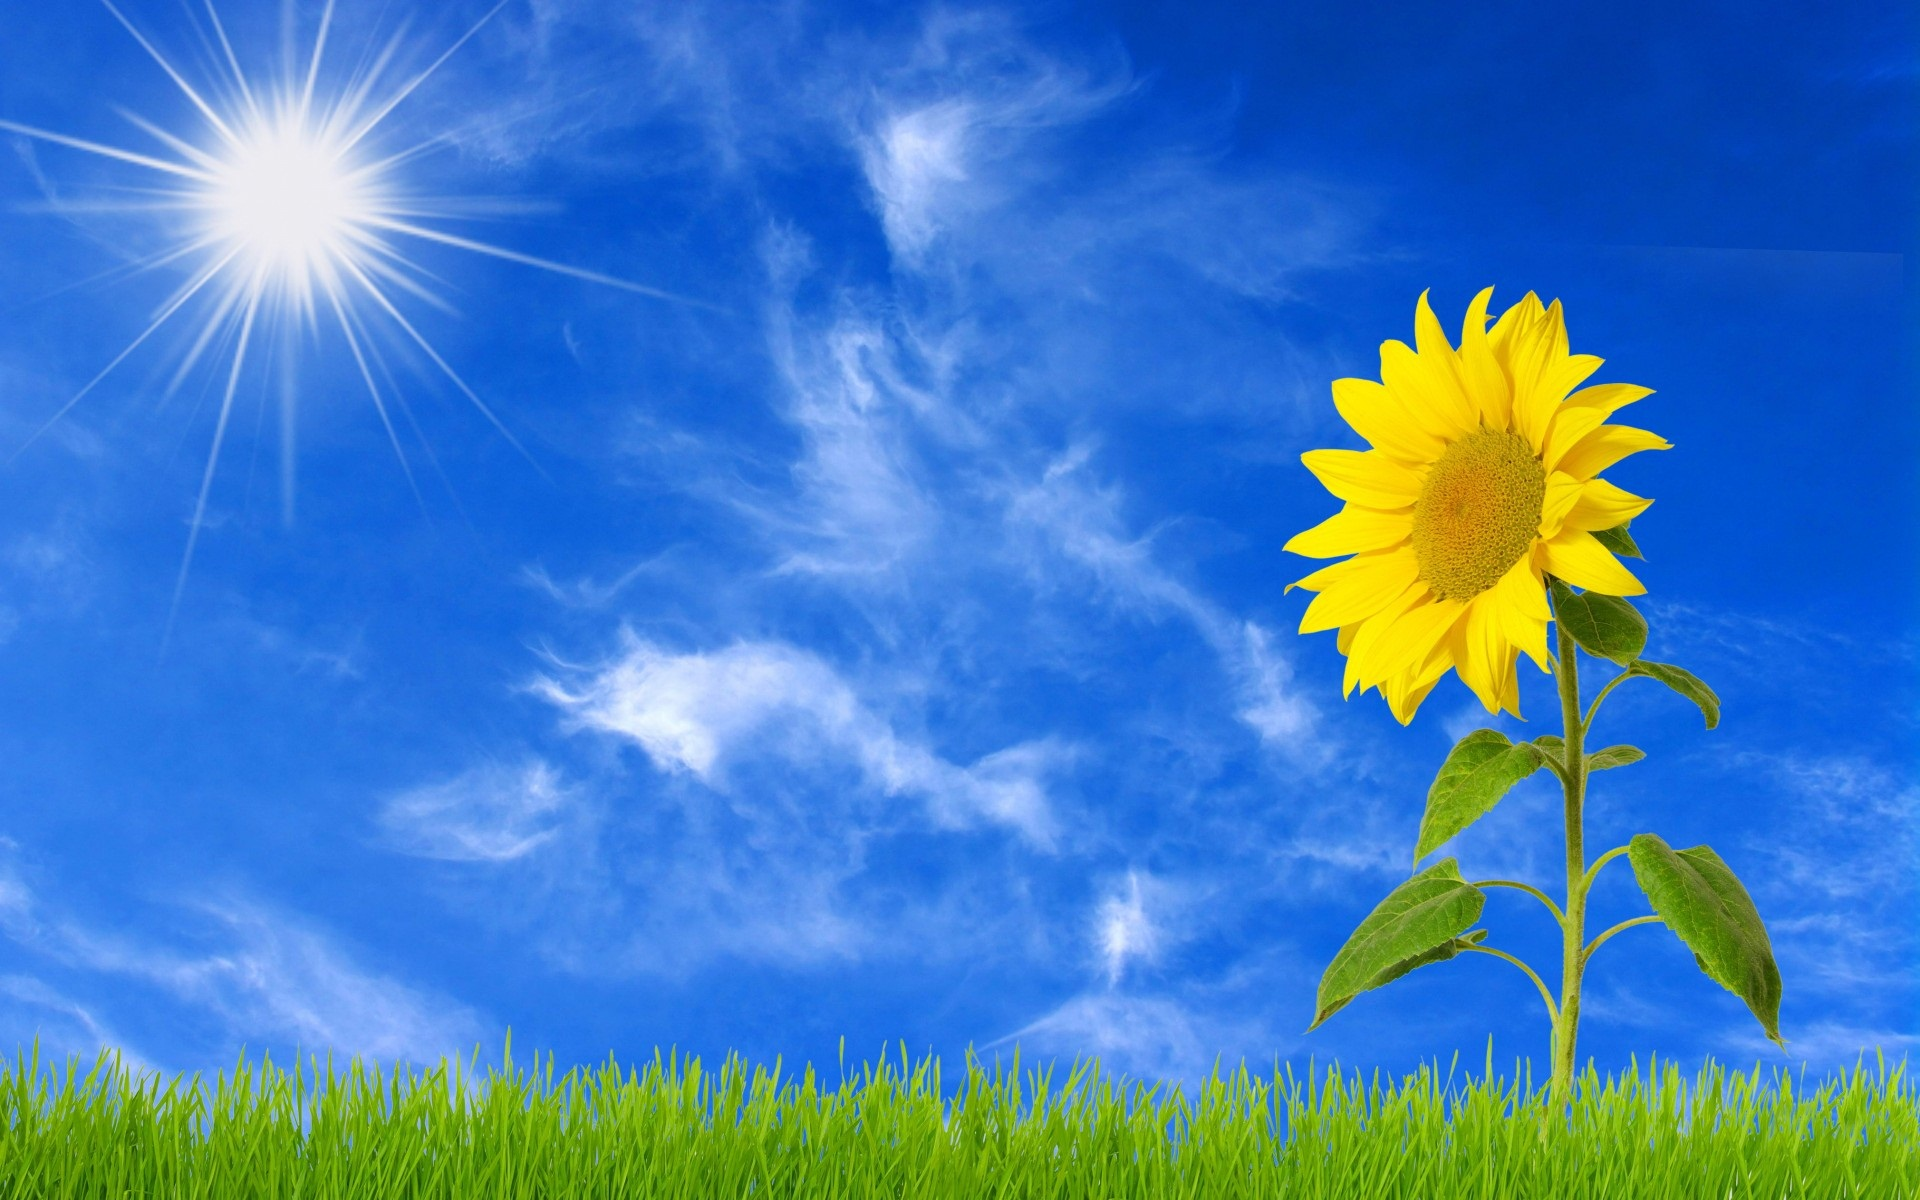 Sunflower clipart wallpaper Very Field  Very Resolution